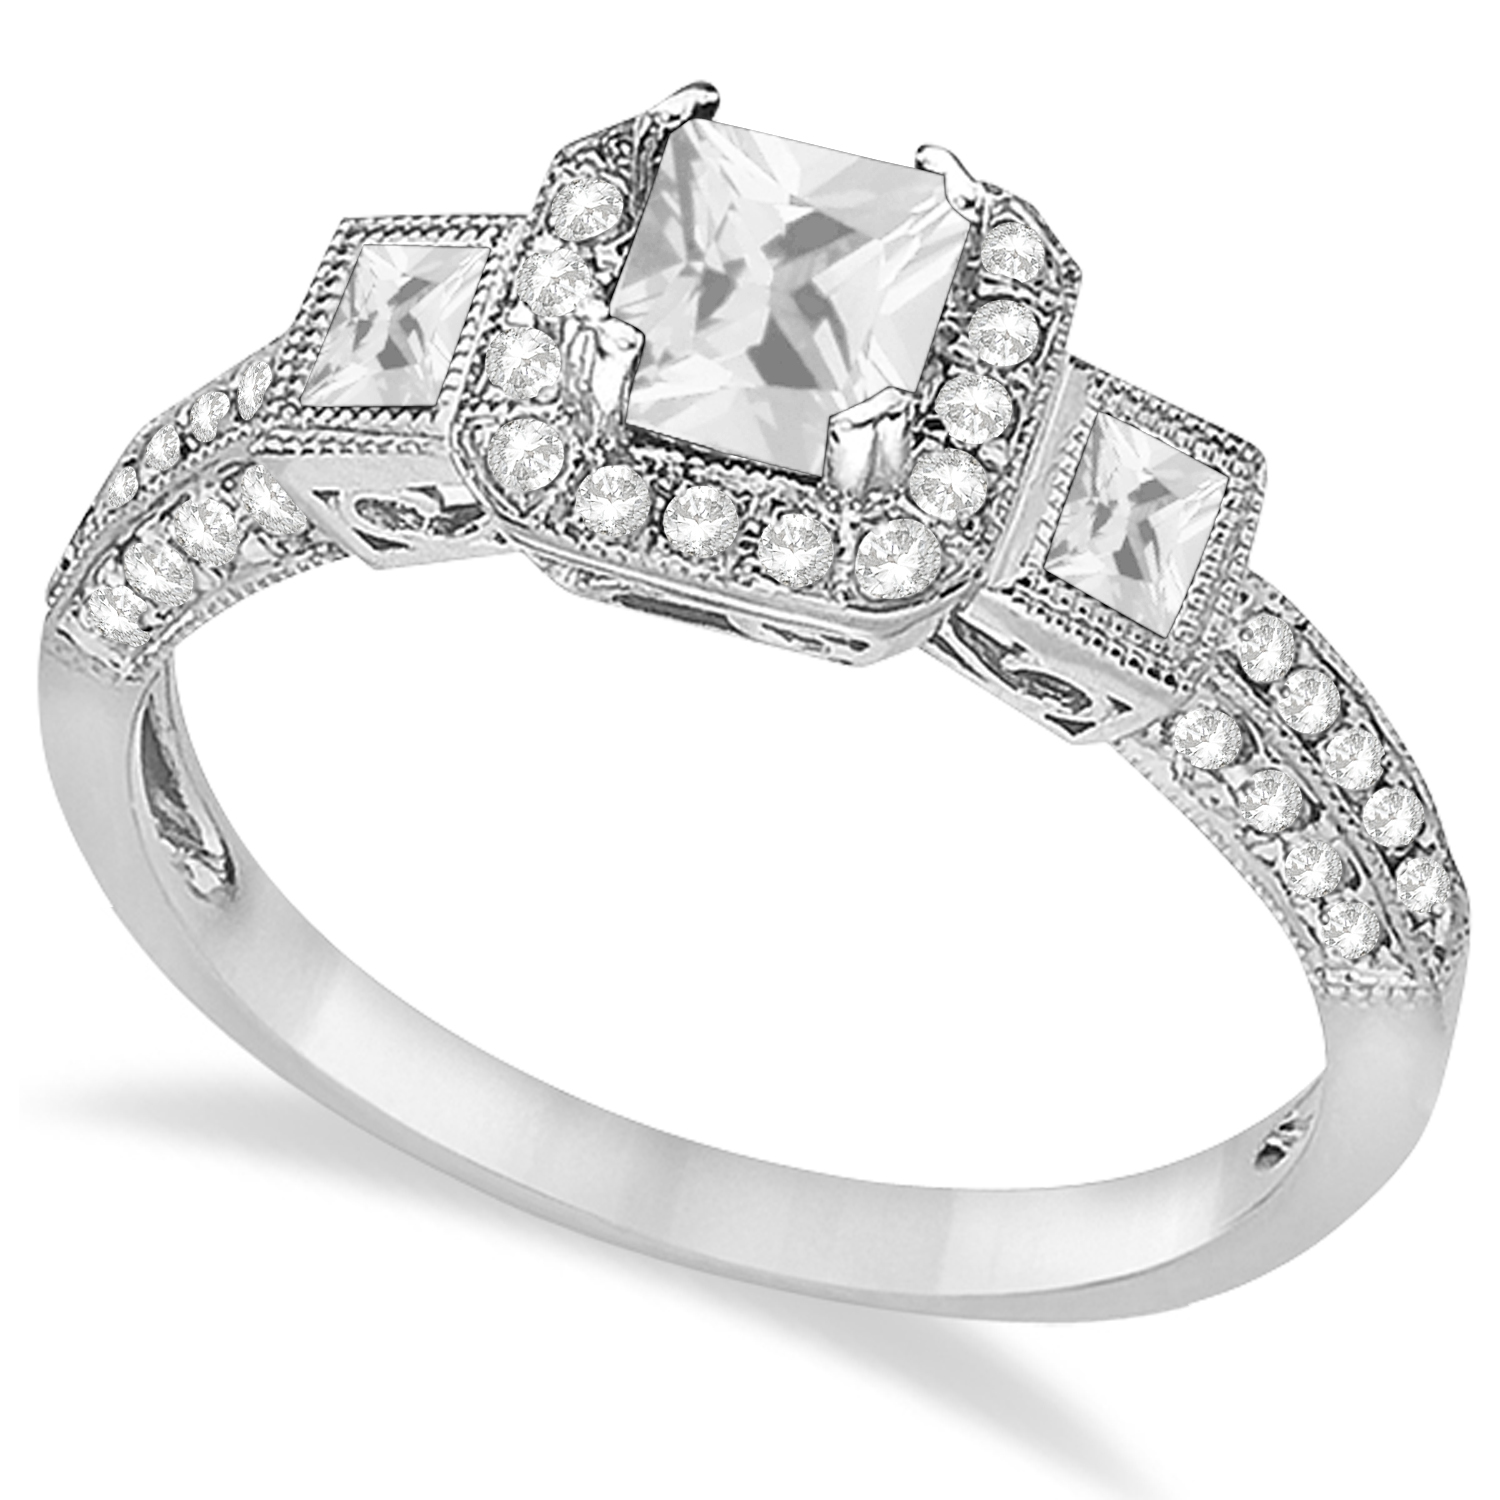 Diamond Engagement Ring 14k White Gold (1.35ctw)